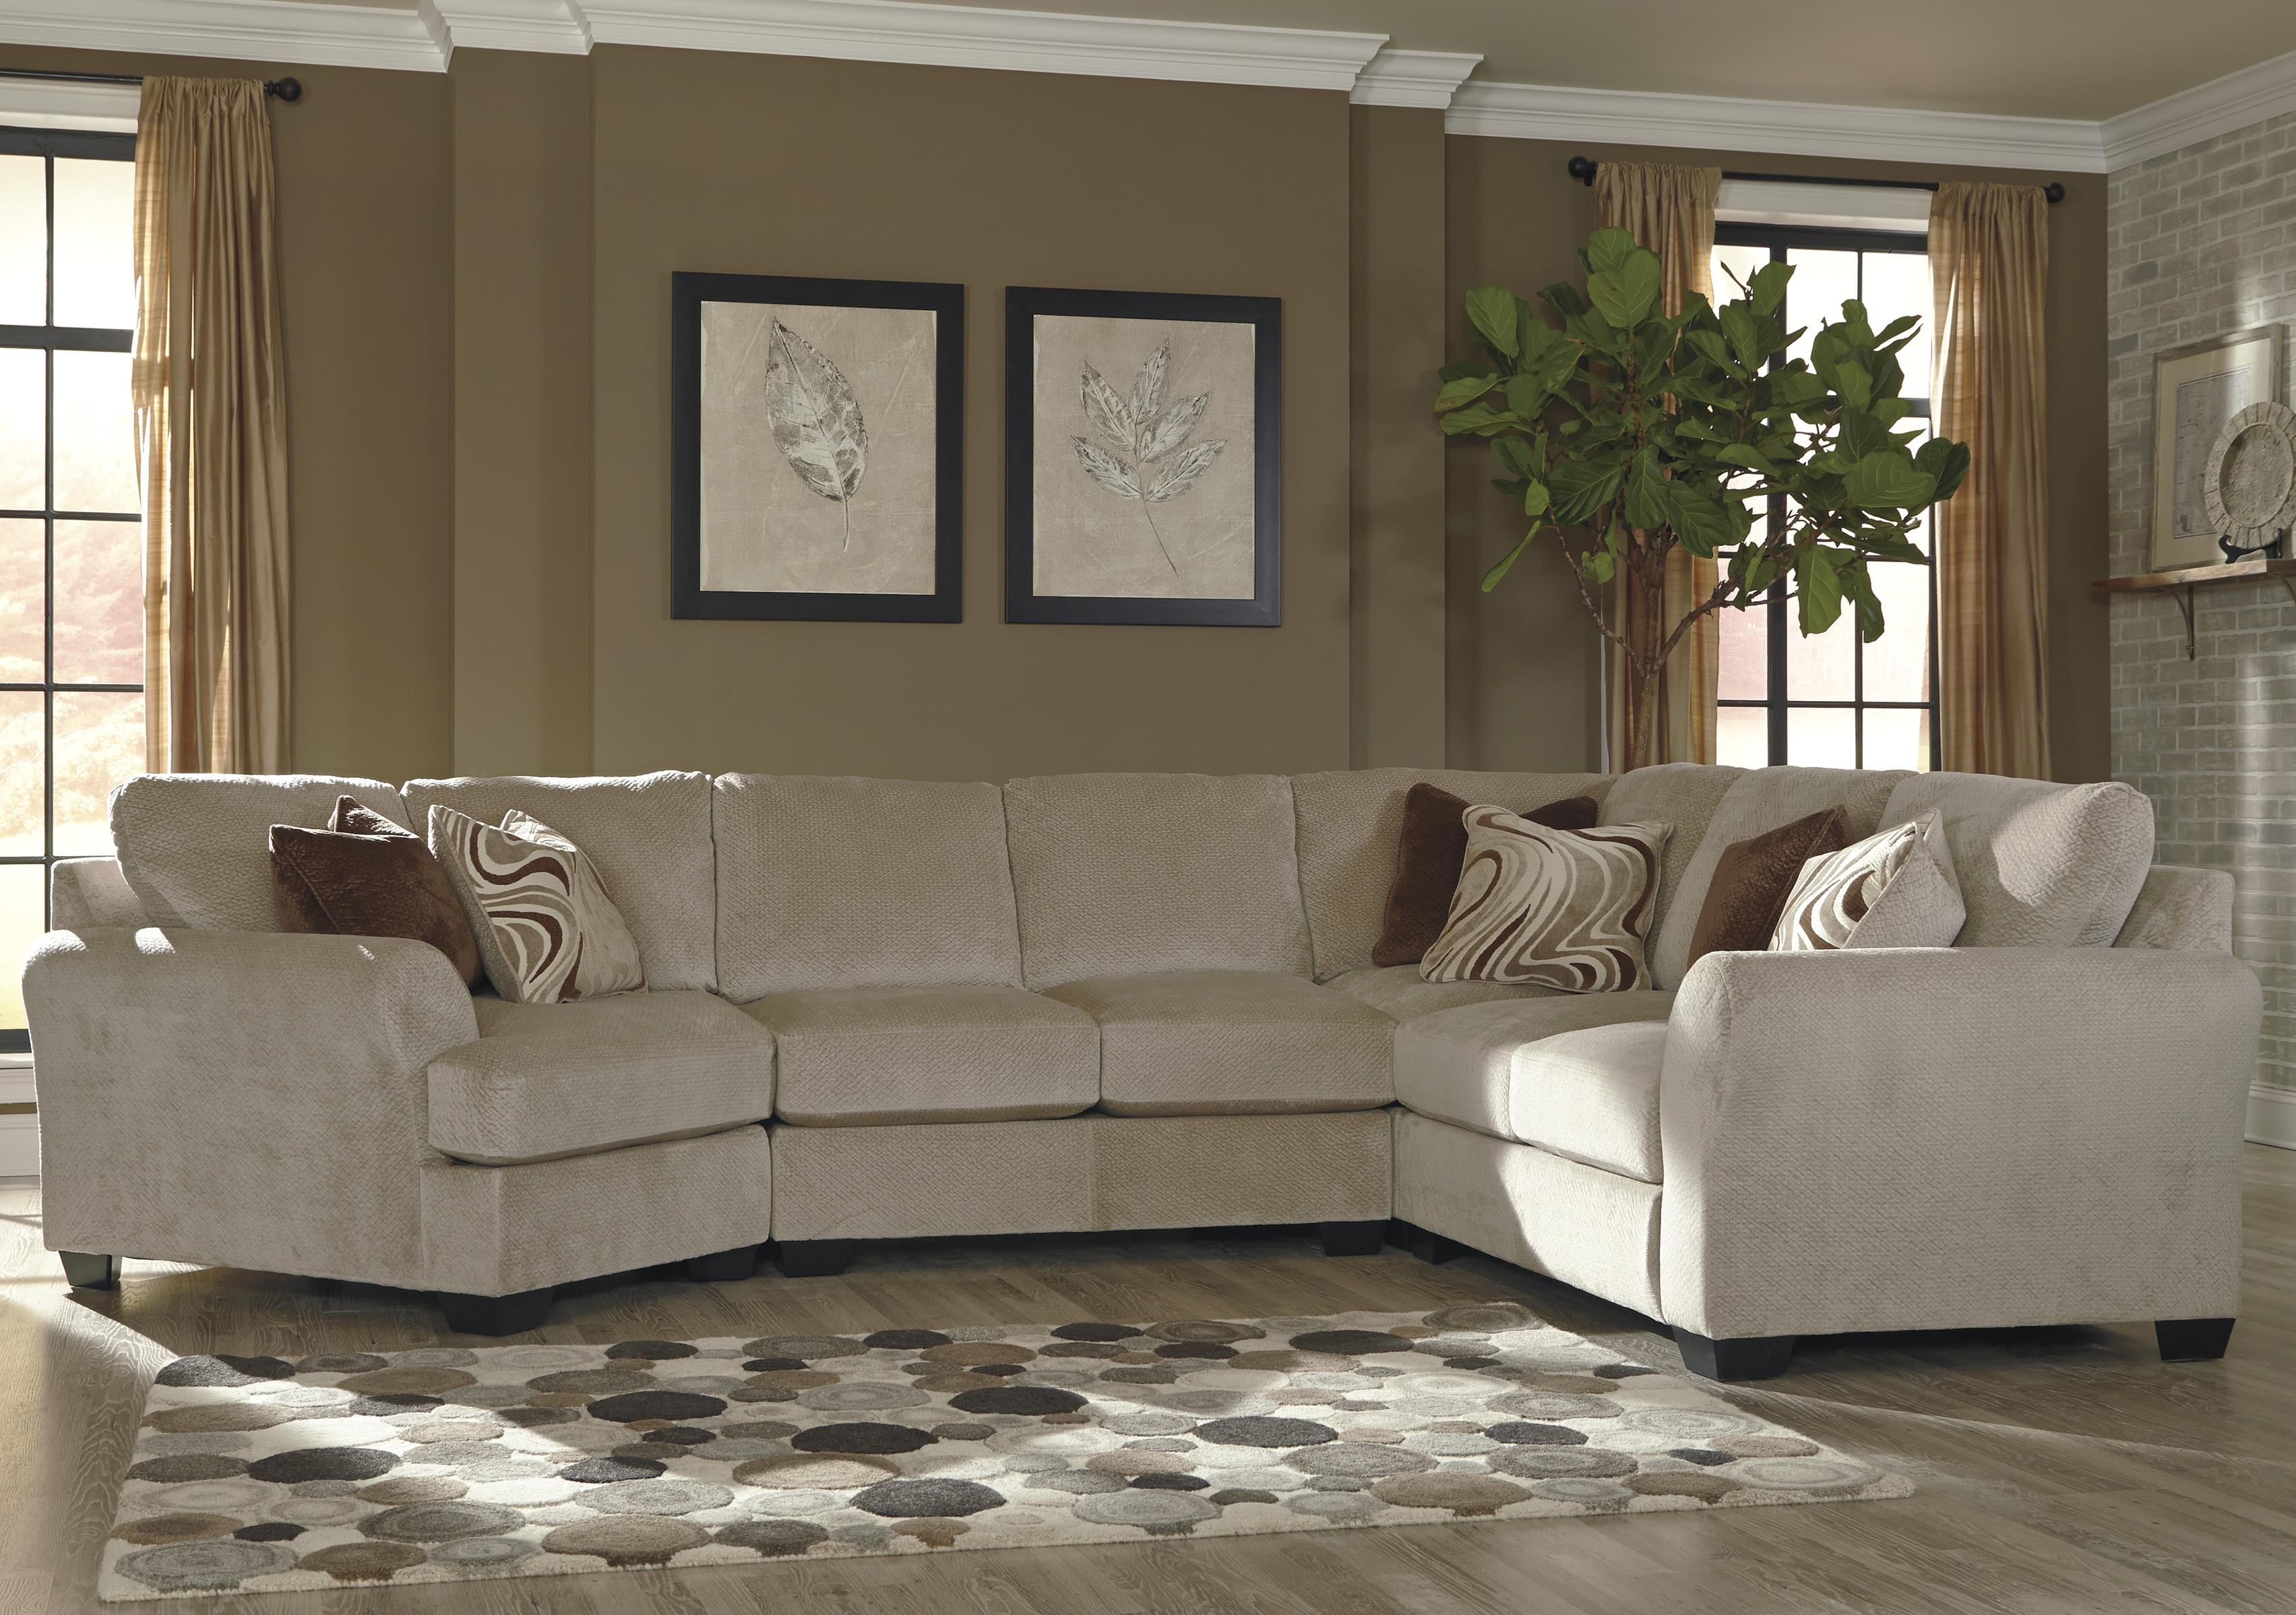 home sectional county grand oversized fairmont cocktail island seating gordon pin ottoman by sofa monroe henrietta for cuddler rochester ruby furnishings